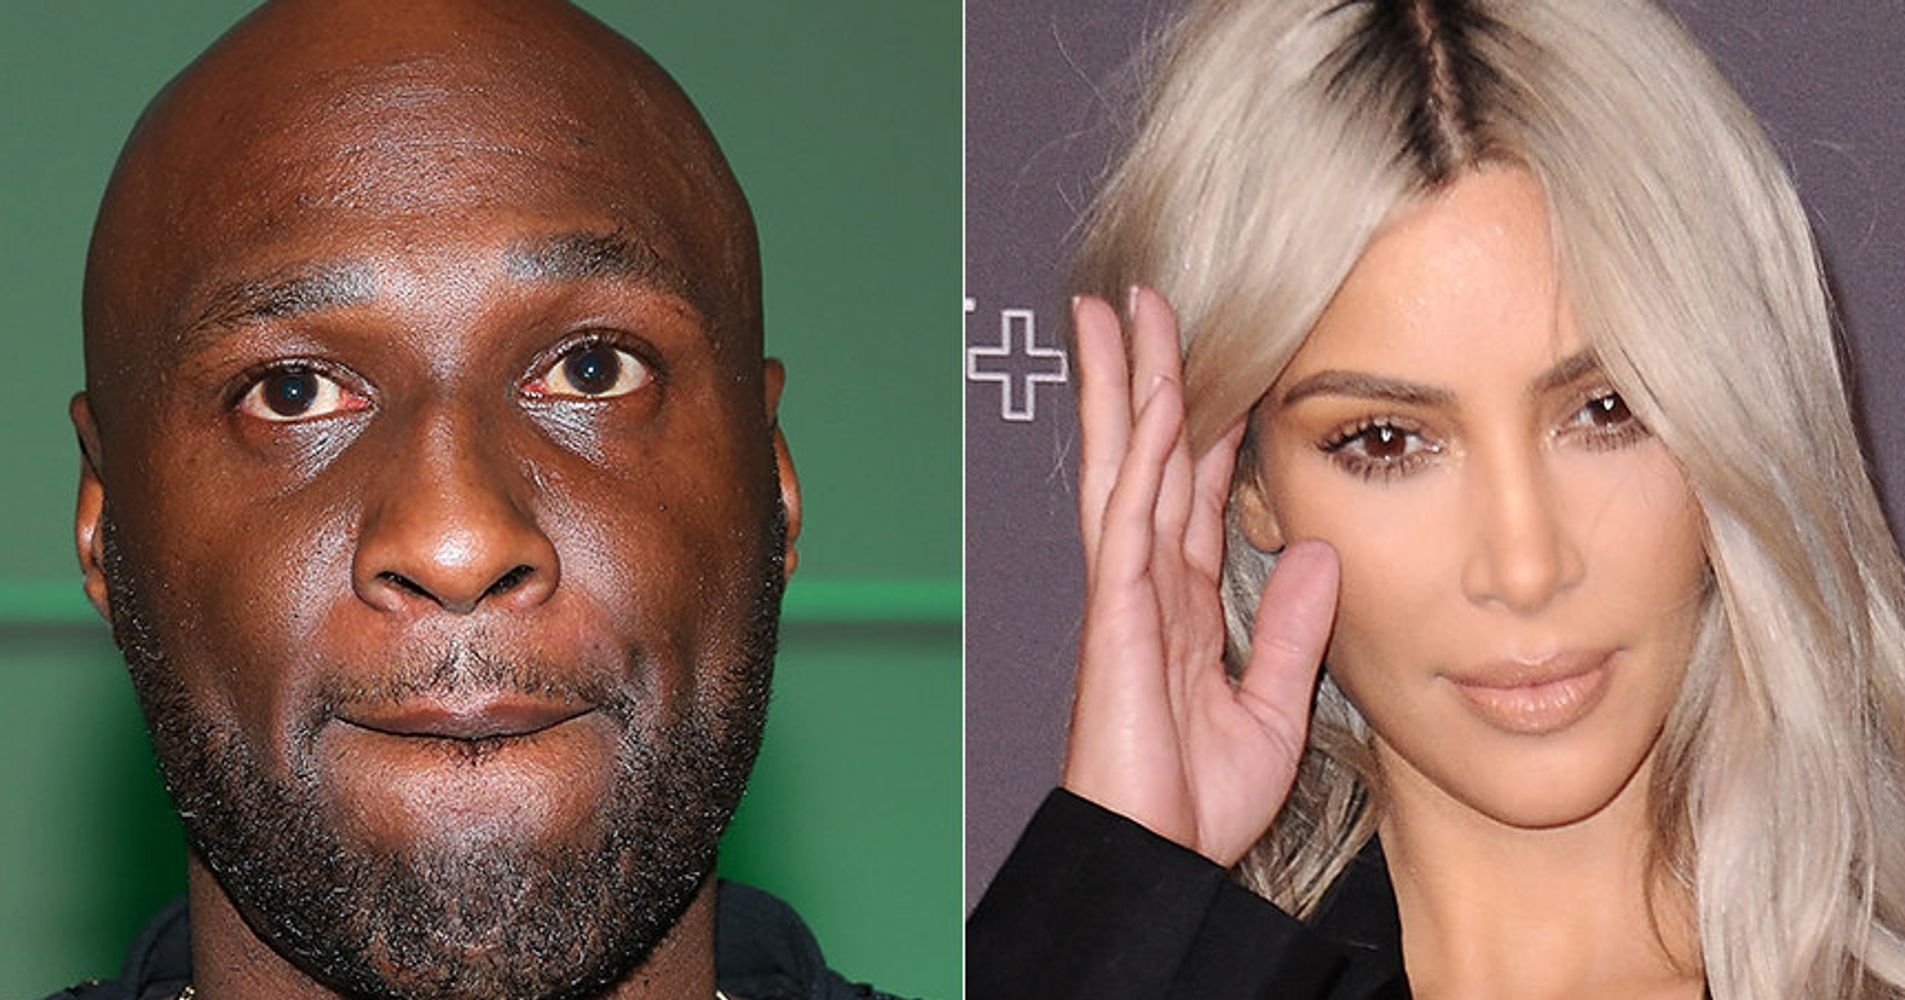 Kim Kardashian Slams Lamar Odom's Mean Interview About Khloe In Just 5 Words